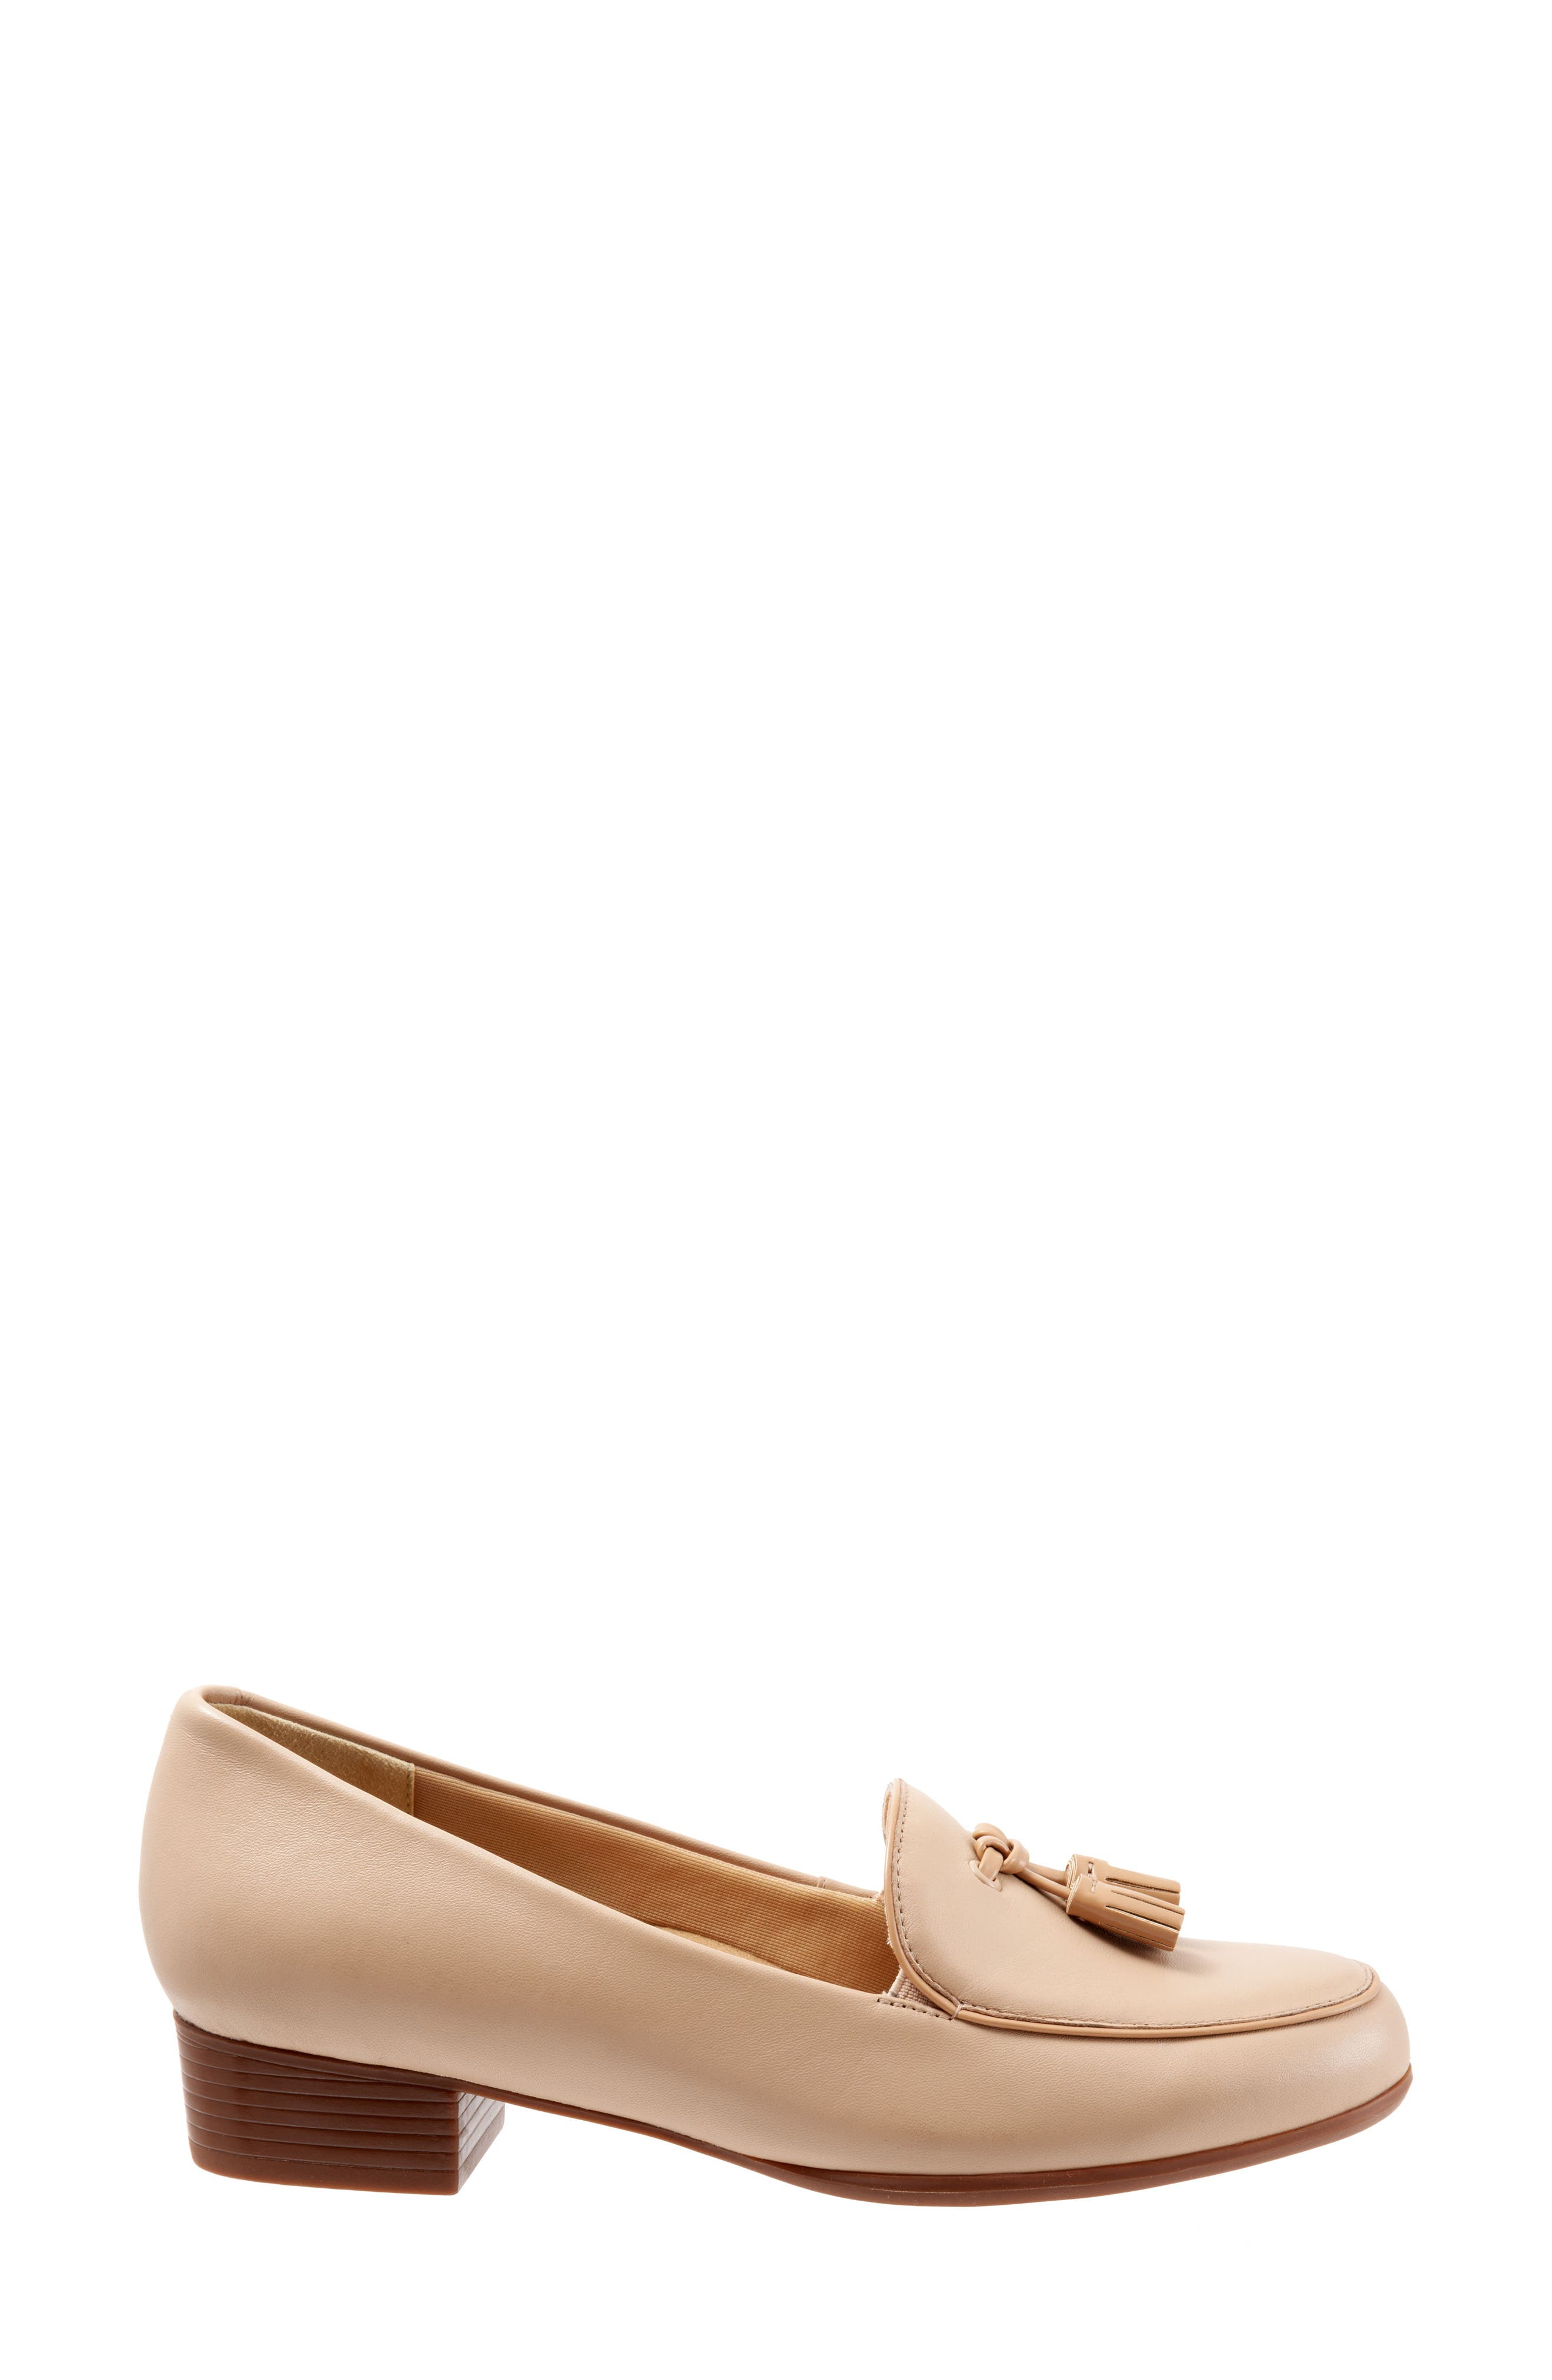 TROTTERS, Mary Tassel Loafer, Alternate thumbnail 3, color, NUDE LEATHER